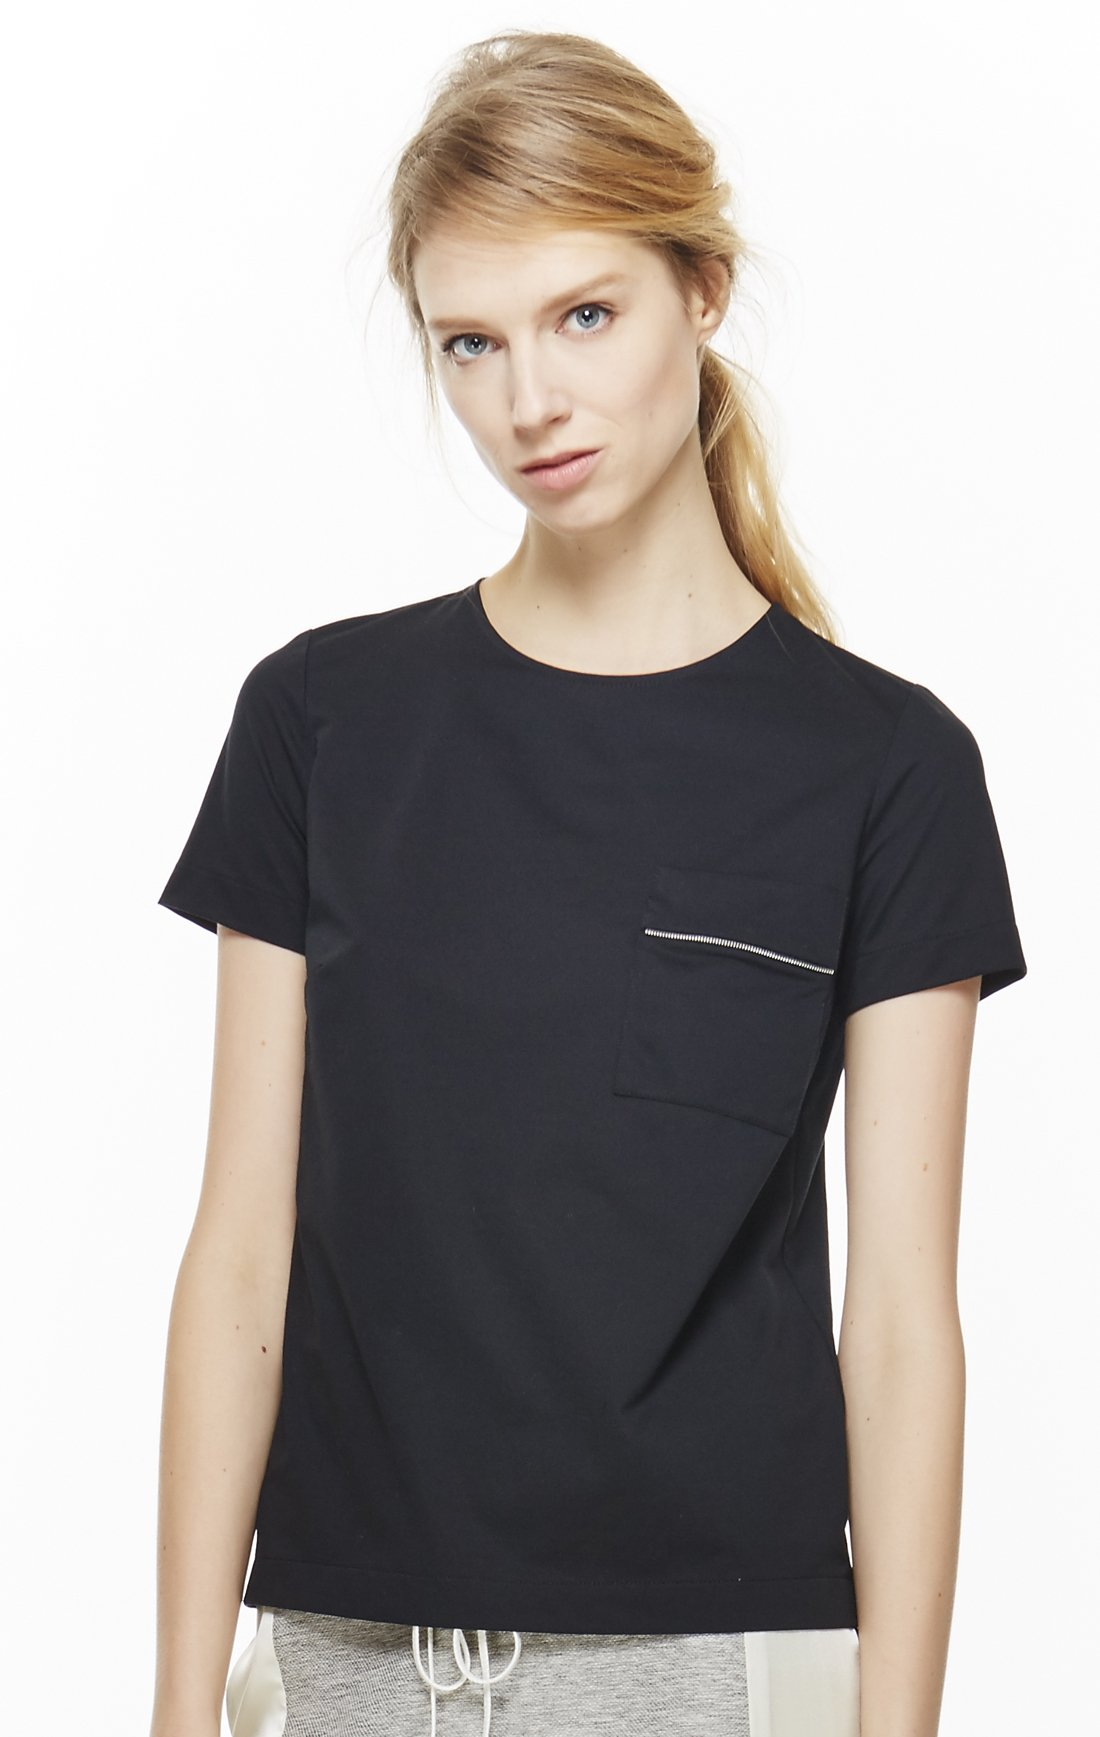 4 Corners of a Circle Women's Zipper Tee Large Black by 4 corners of a circle